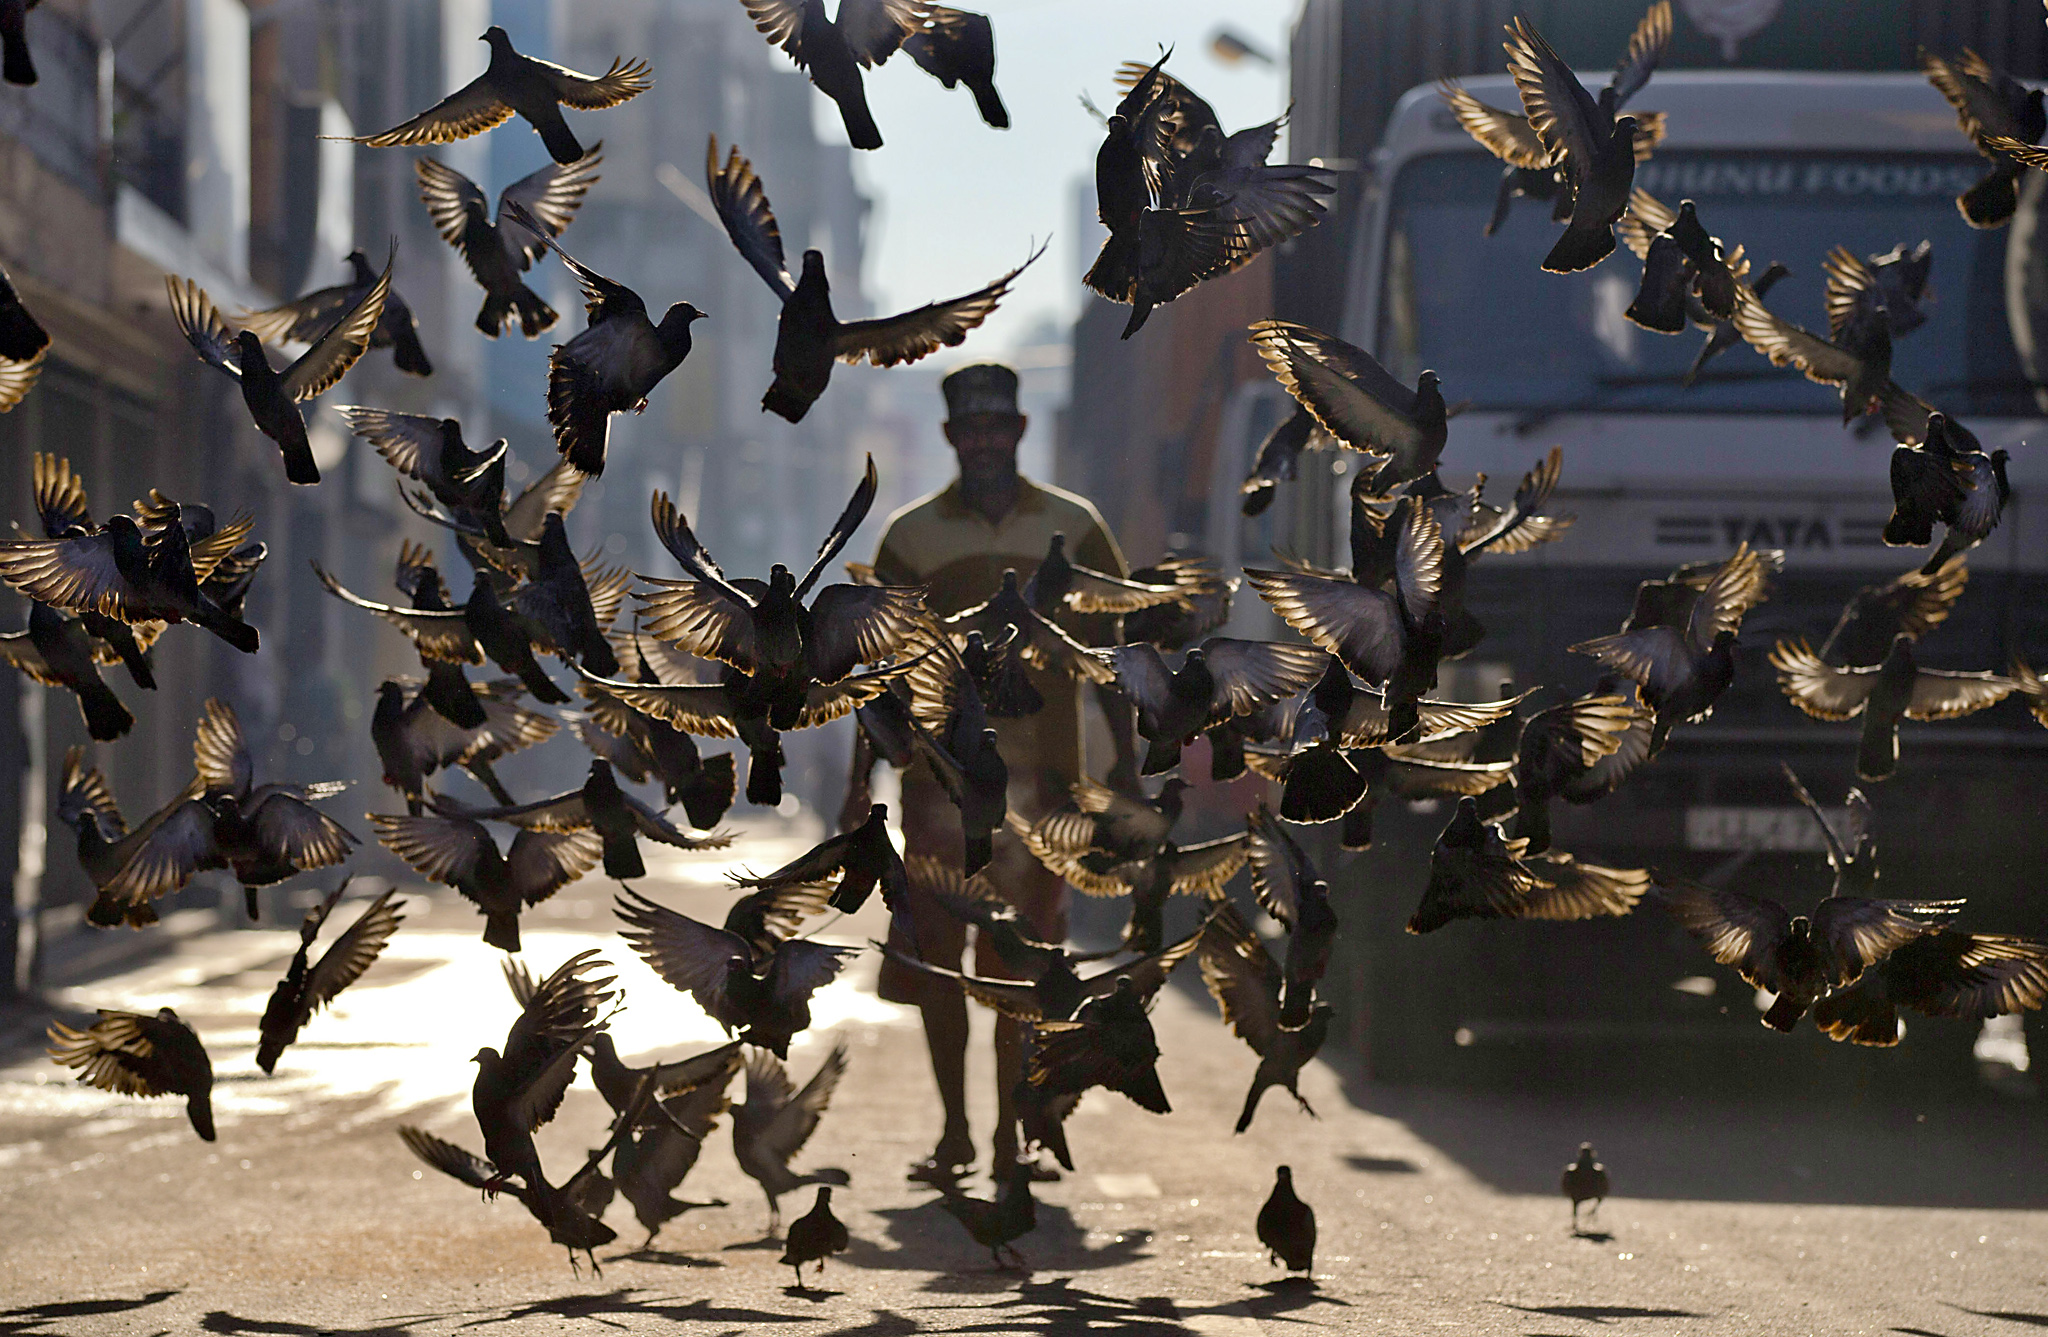 A flock of pigeons take off as a Sri Lankan man makes his way through a street in Colombo, Sri Lanka, Wednesday, April 20, 2016. Some believe feeding pigeons earn them good deeds. (AP Photo/Eranga Jayawardena)